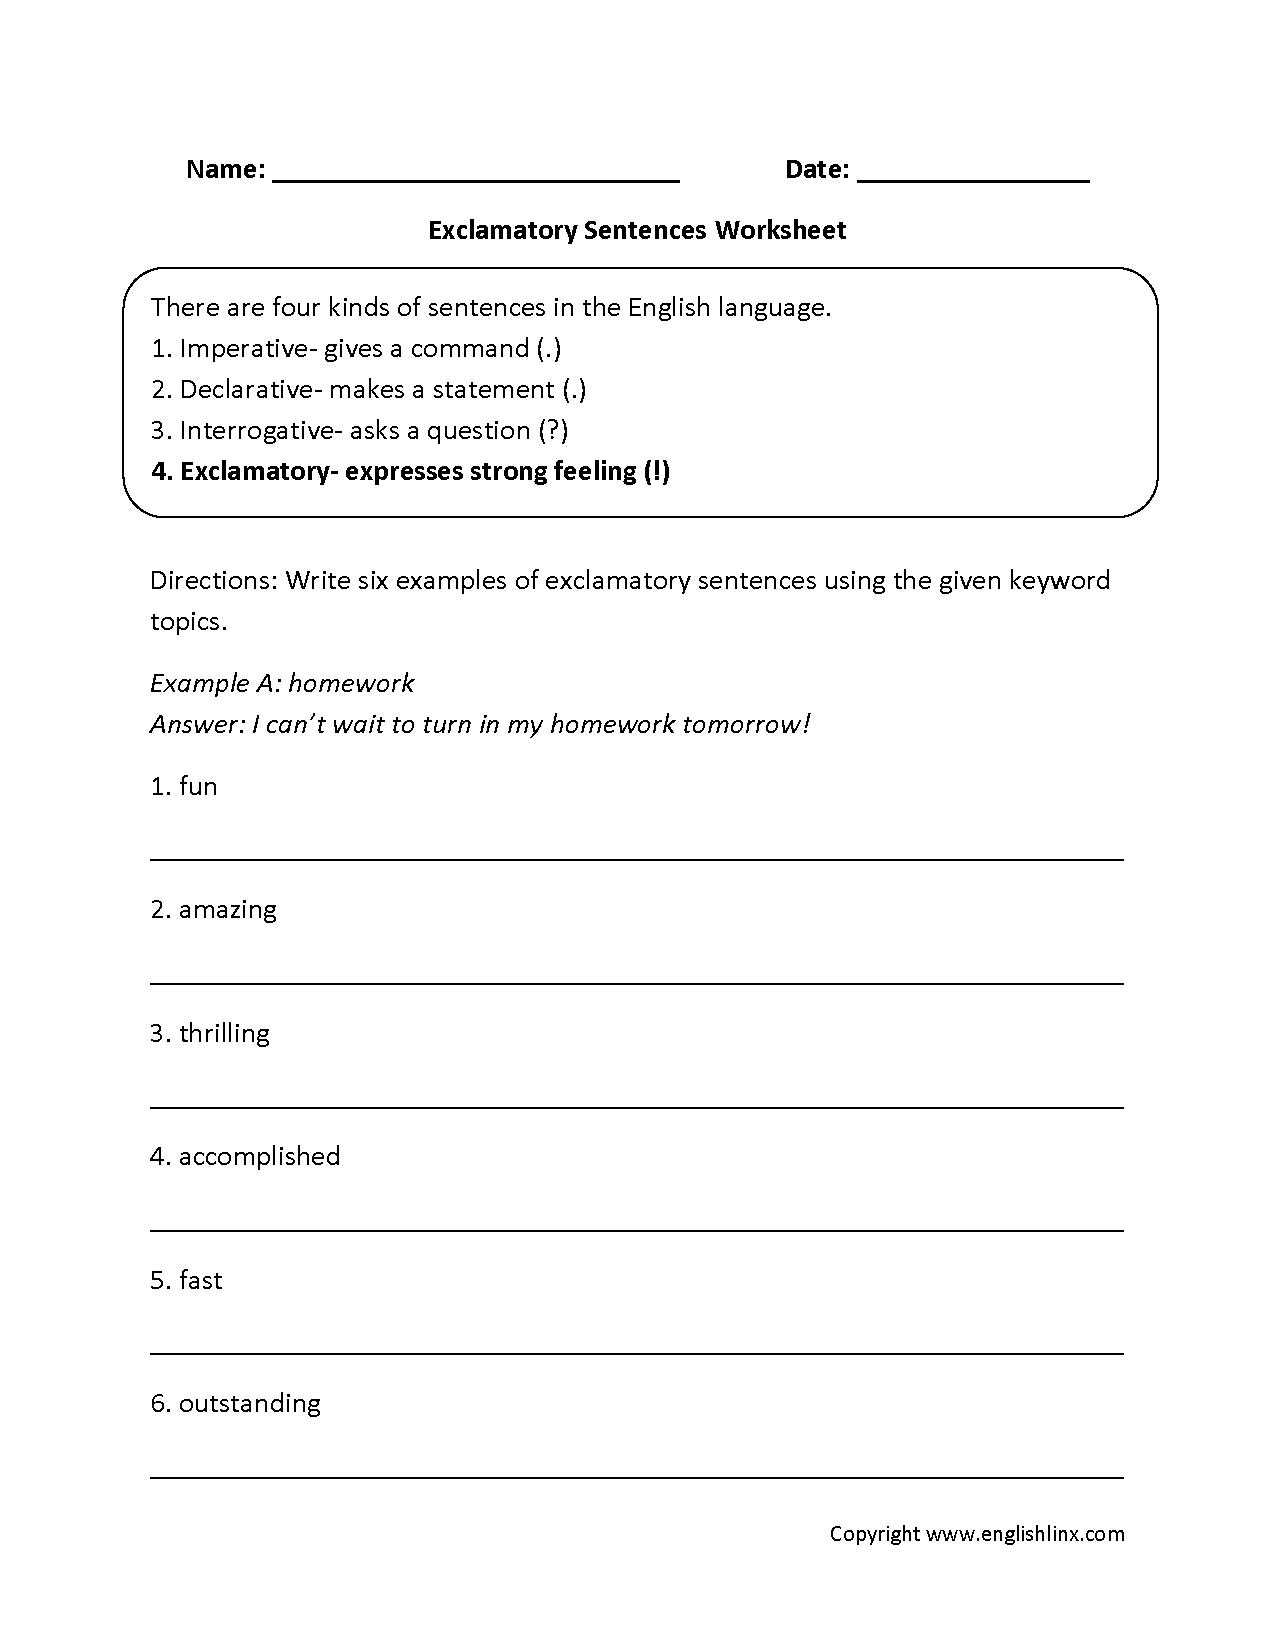 Worksheets 8th Grade Language Arts Worksheets exclamatory types of sentences worksheets education language this is the section learning will help with writing there are four of